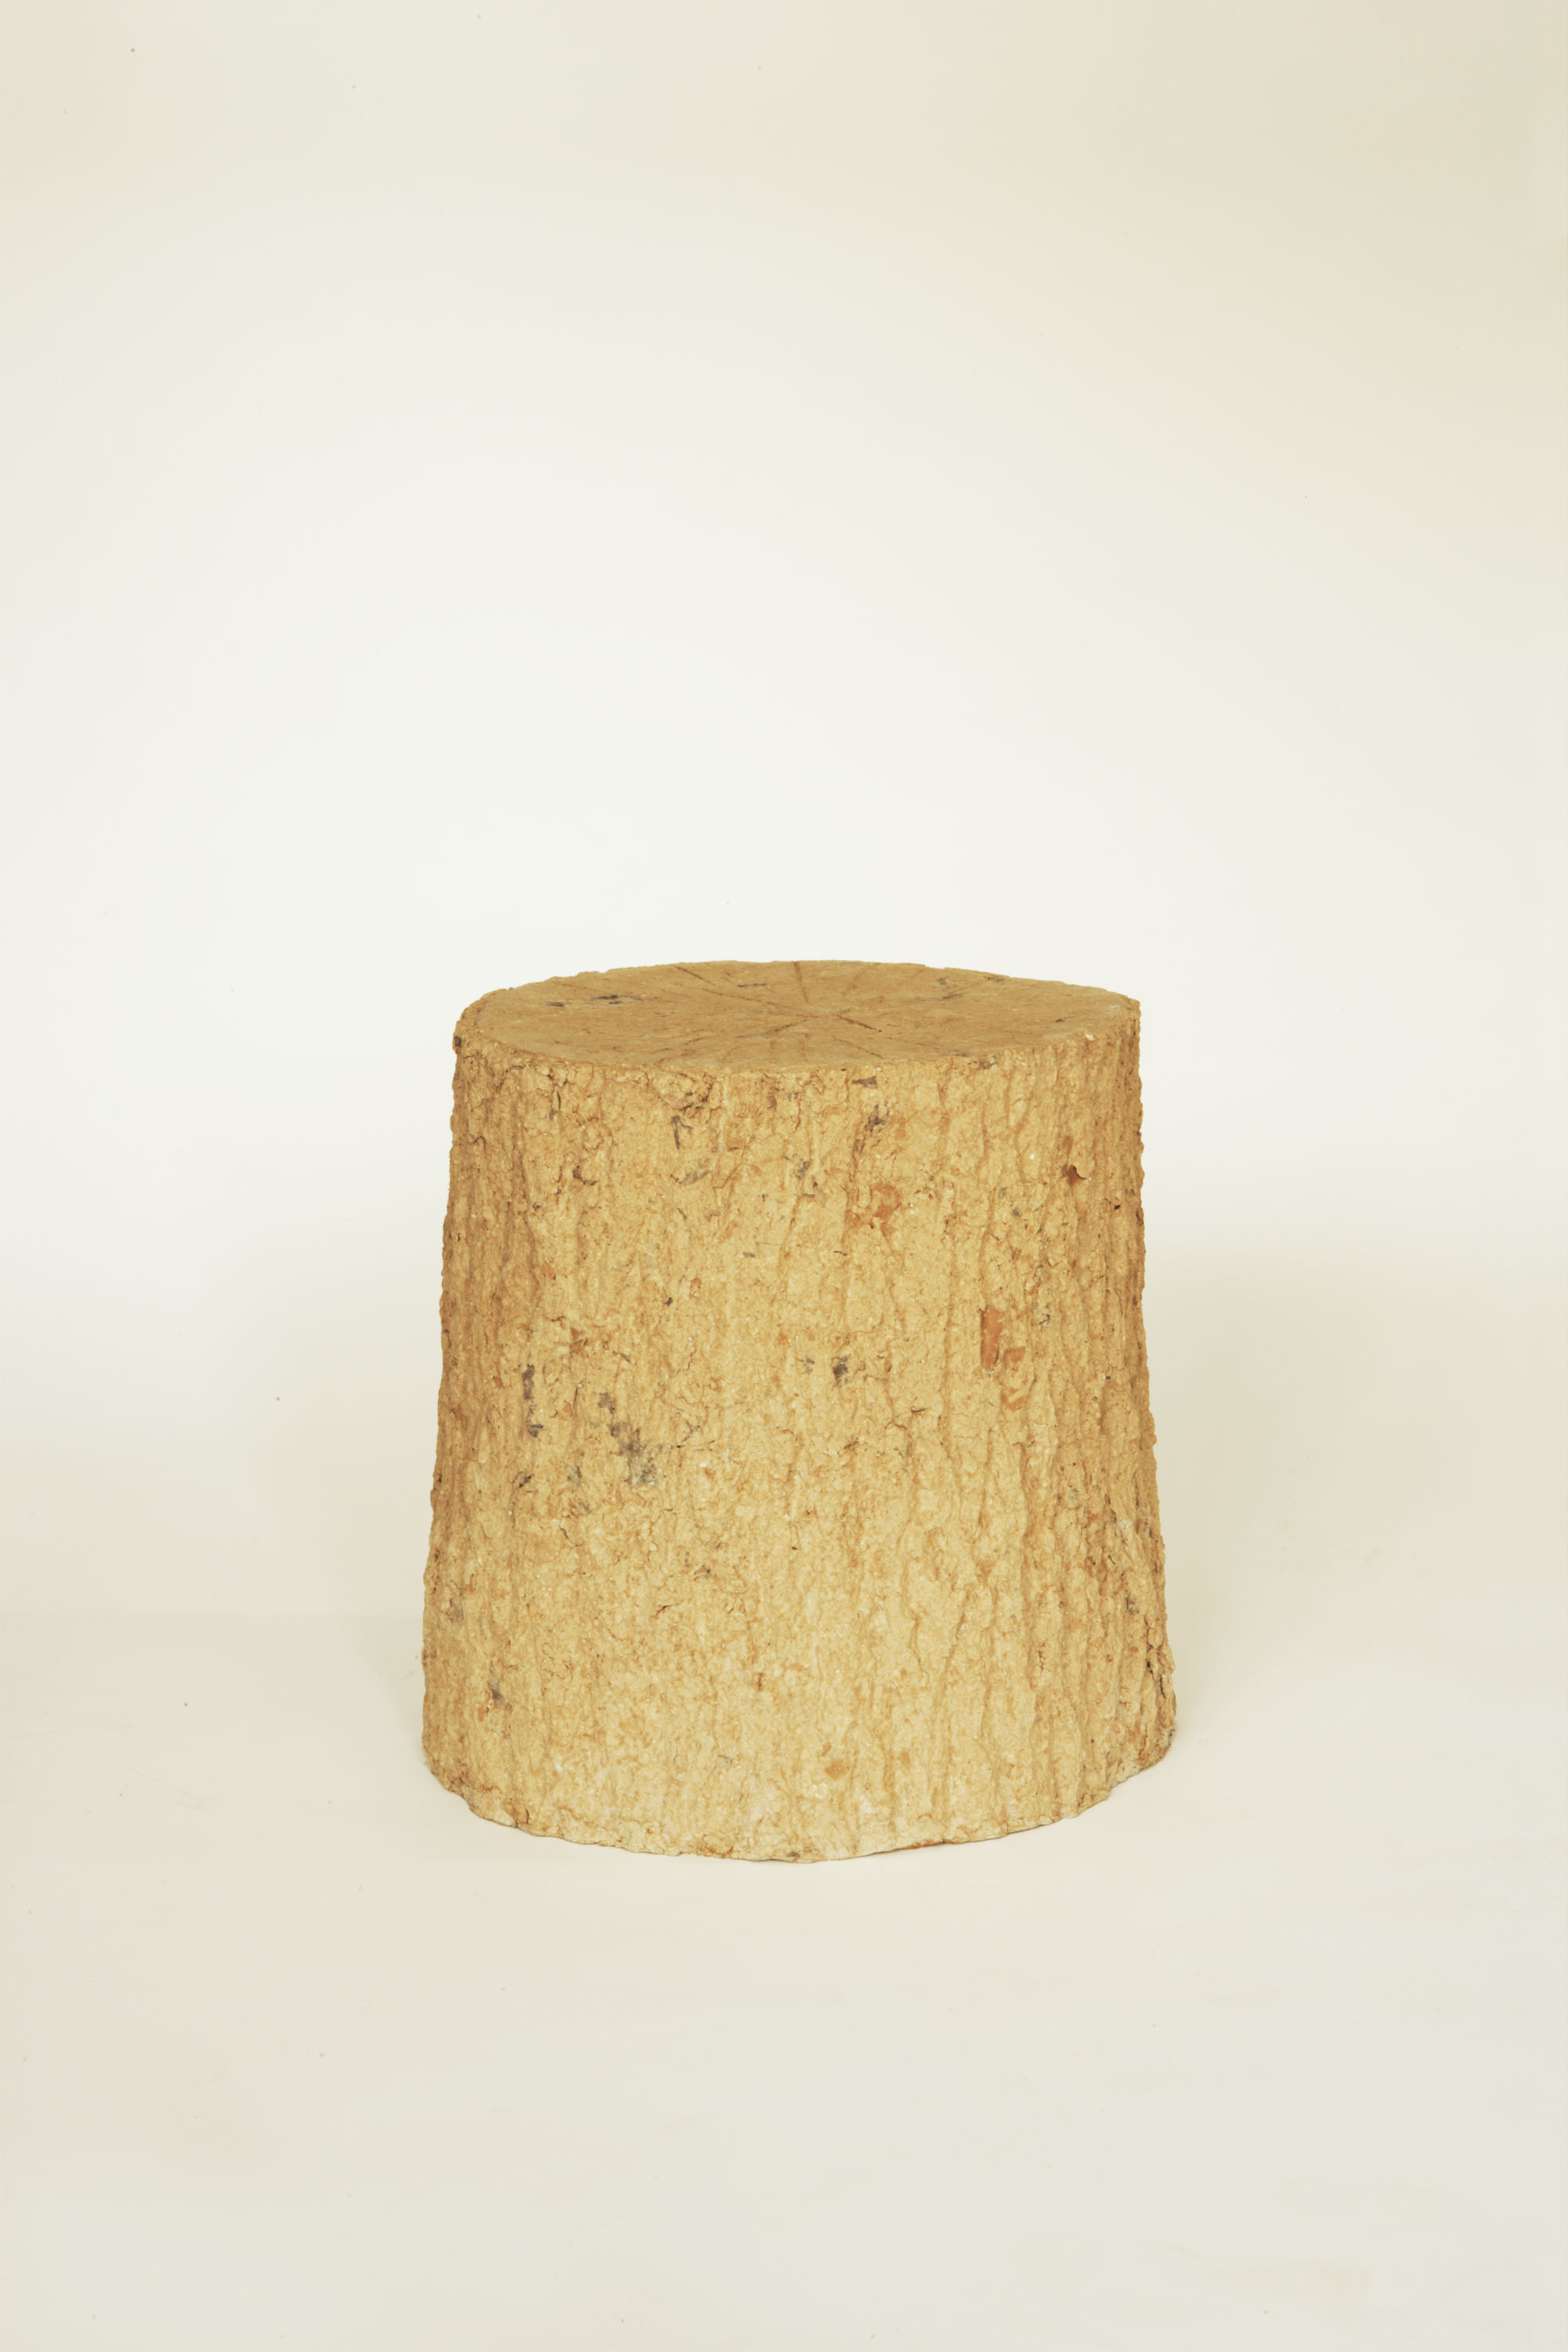 PAPER PULP CHAIR for David Byrne